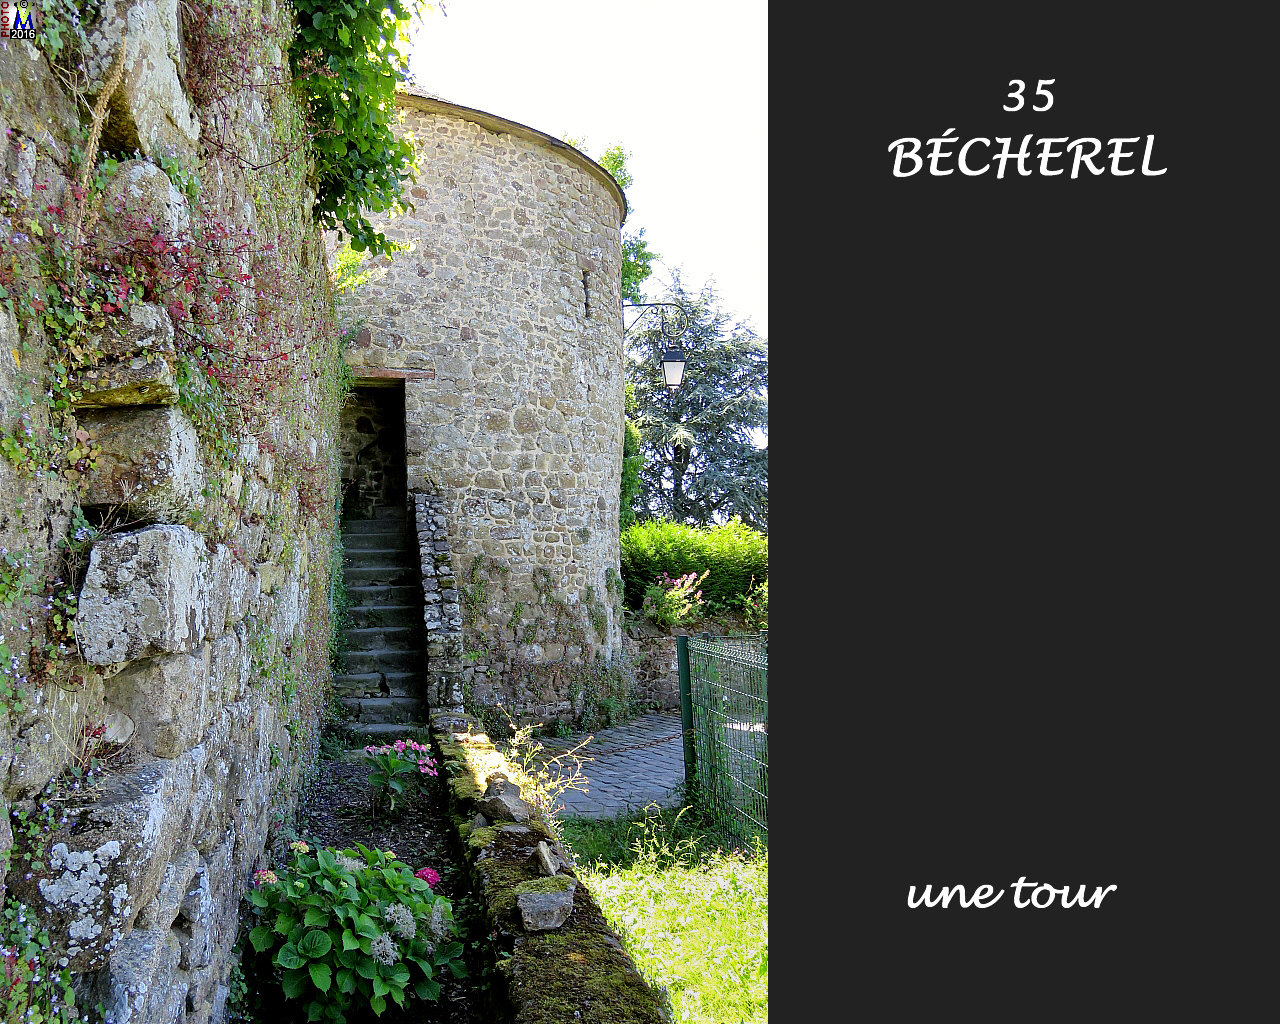 35BECHEREL_tour_102.jpg